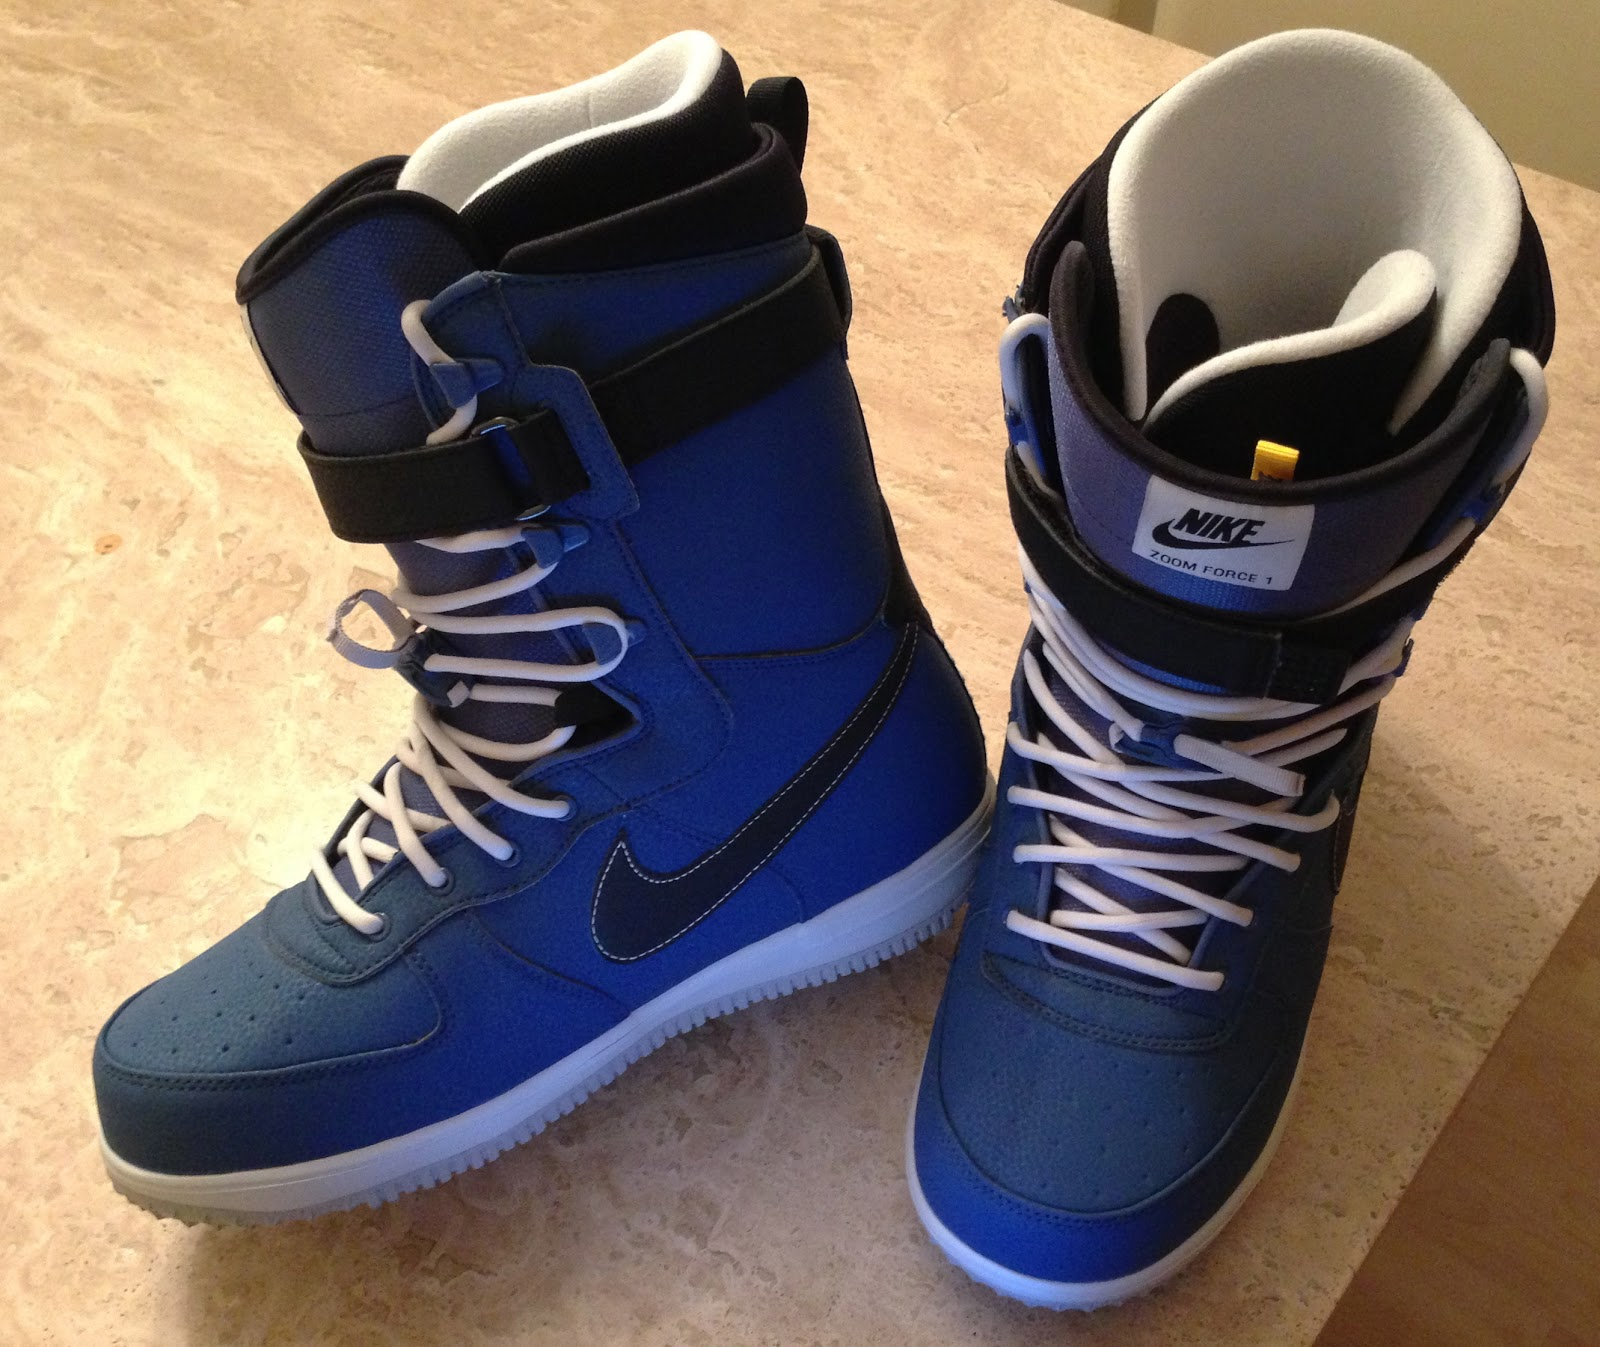 Nike Stapes Shoes